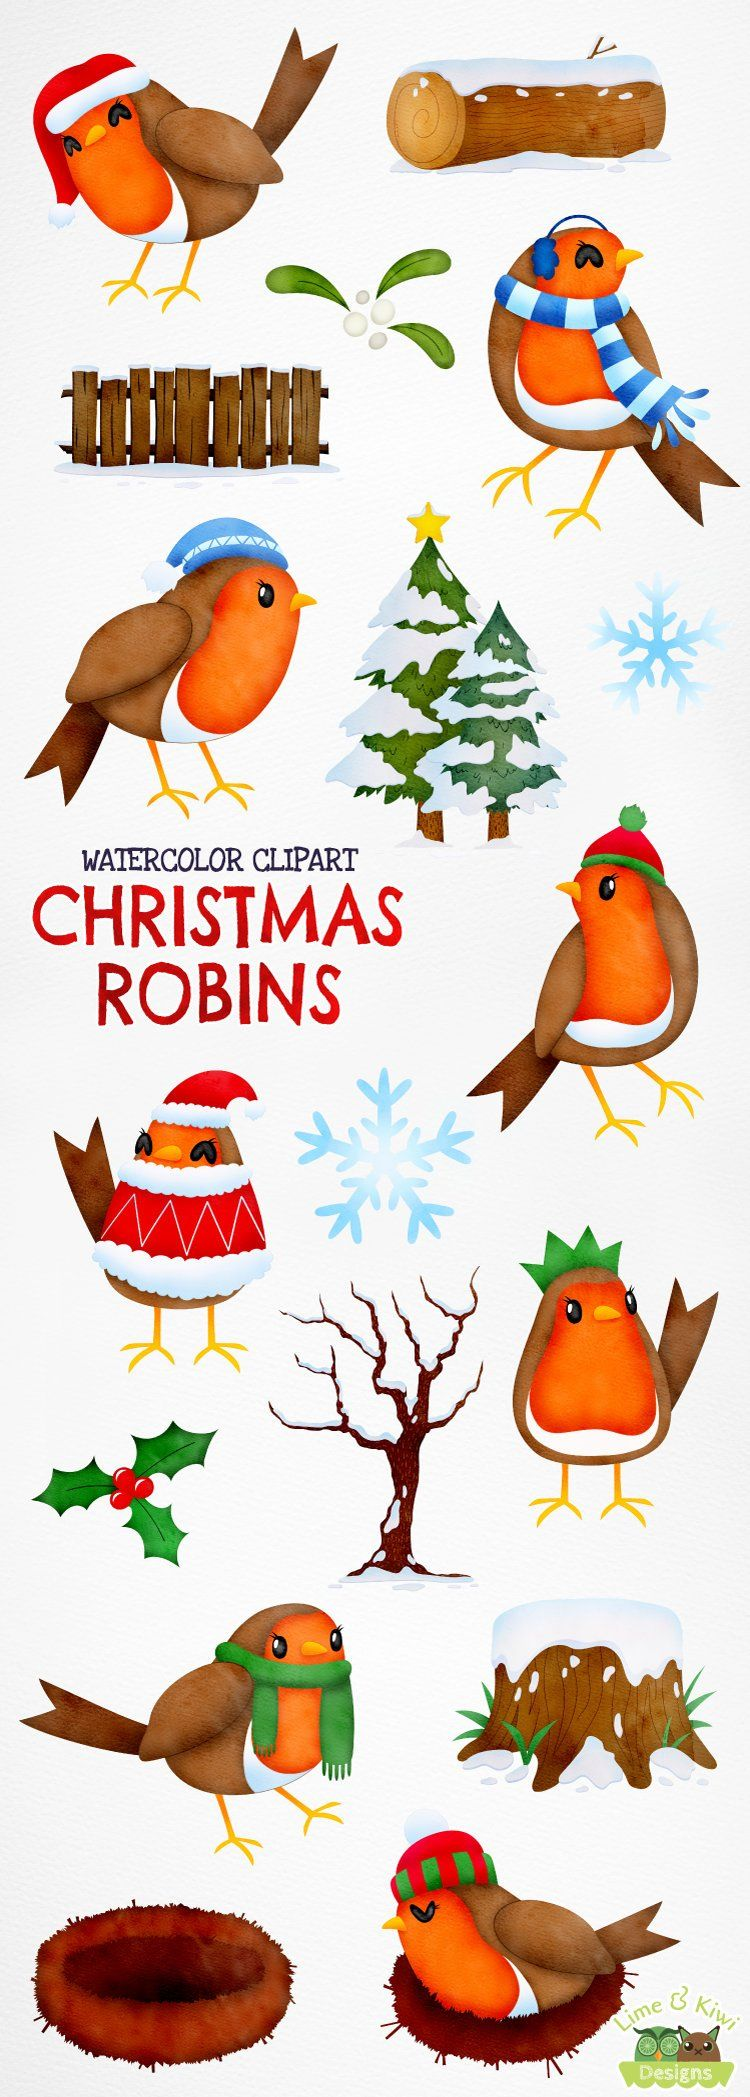 christmas robins watercolor clipart instant download vector etsy [ 750 x 2097 Pixel ]